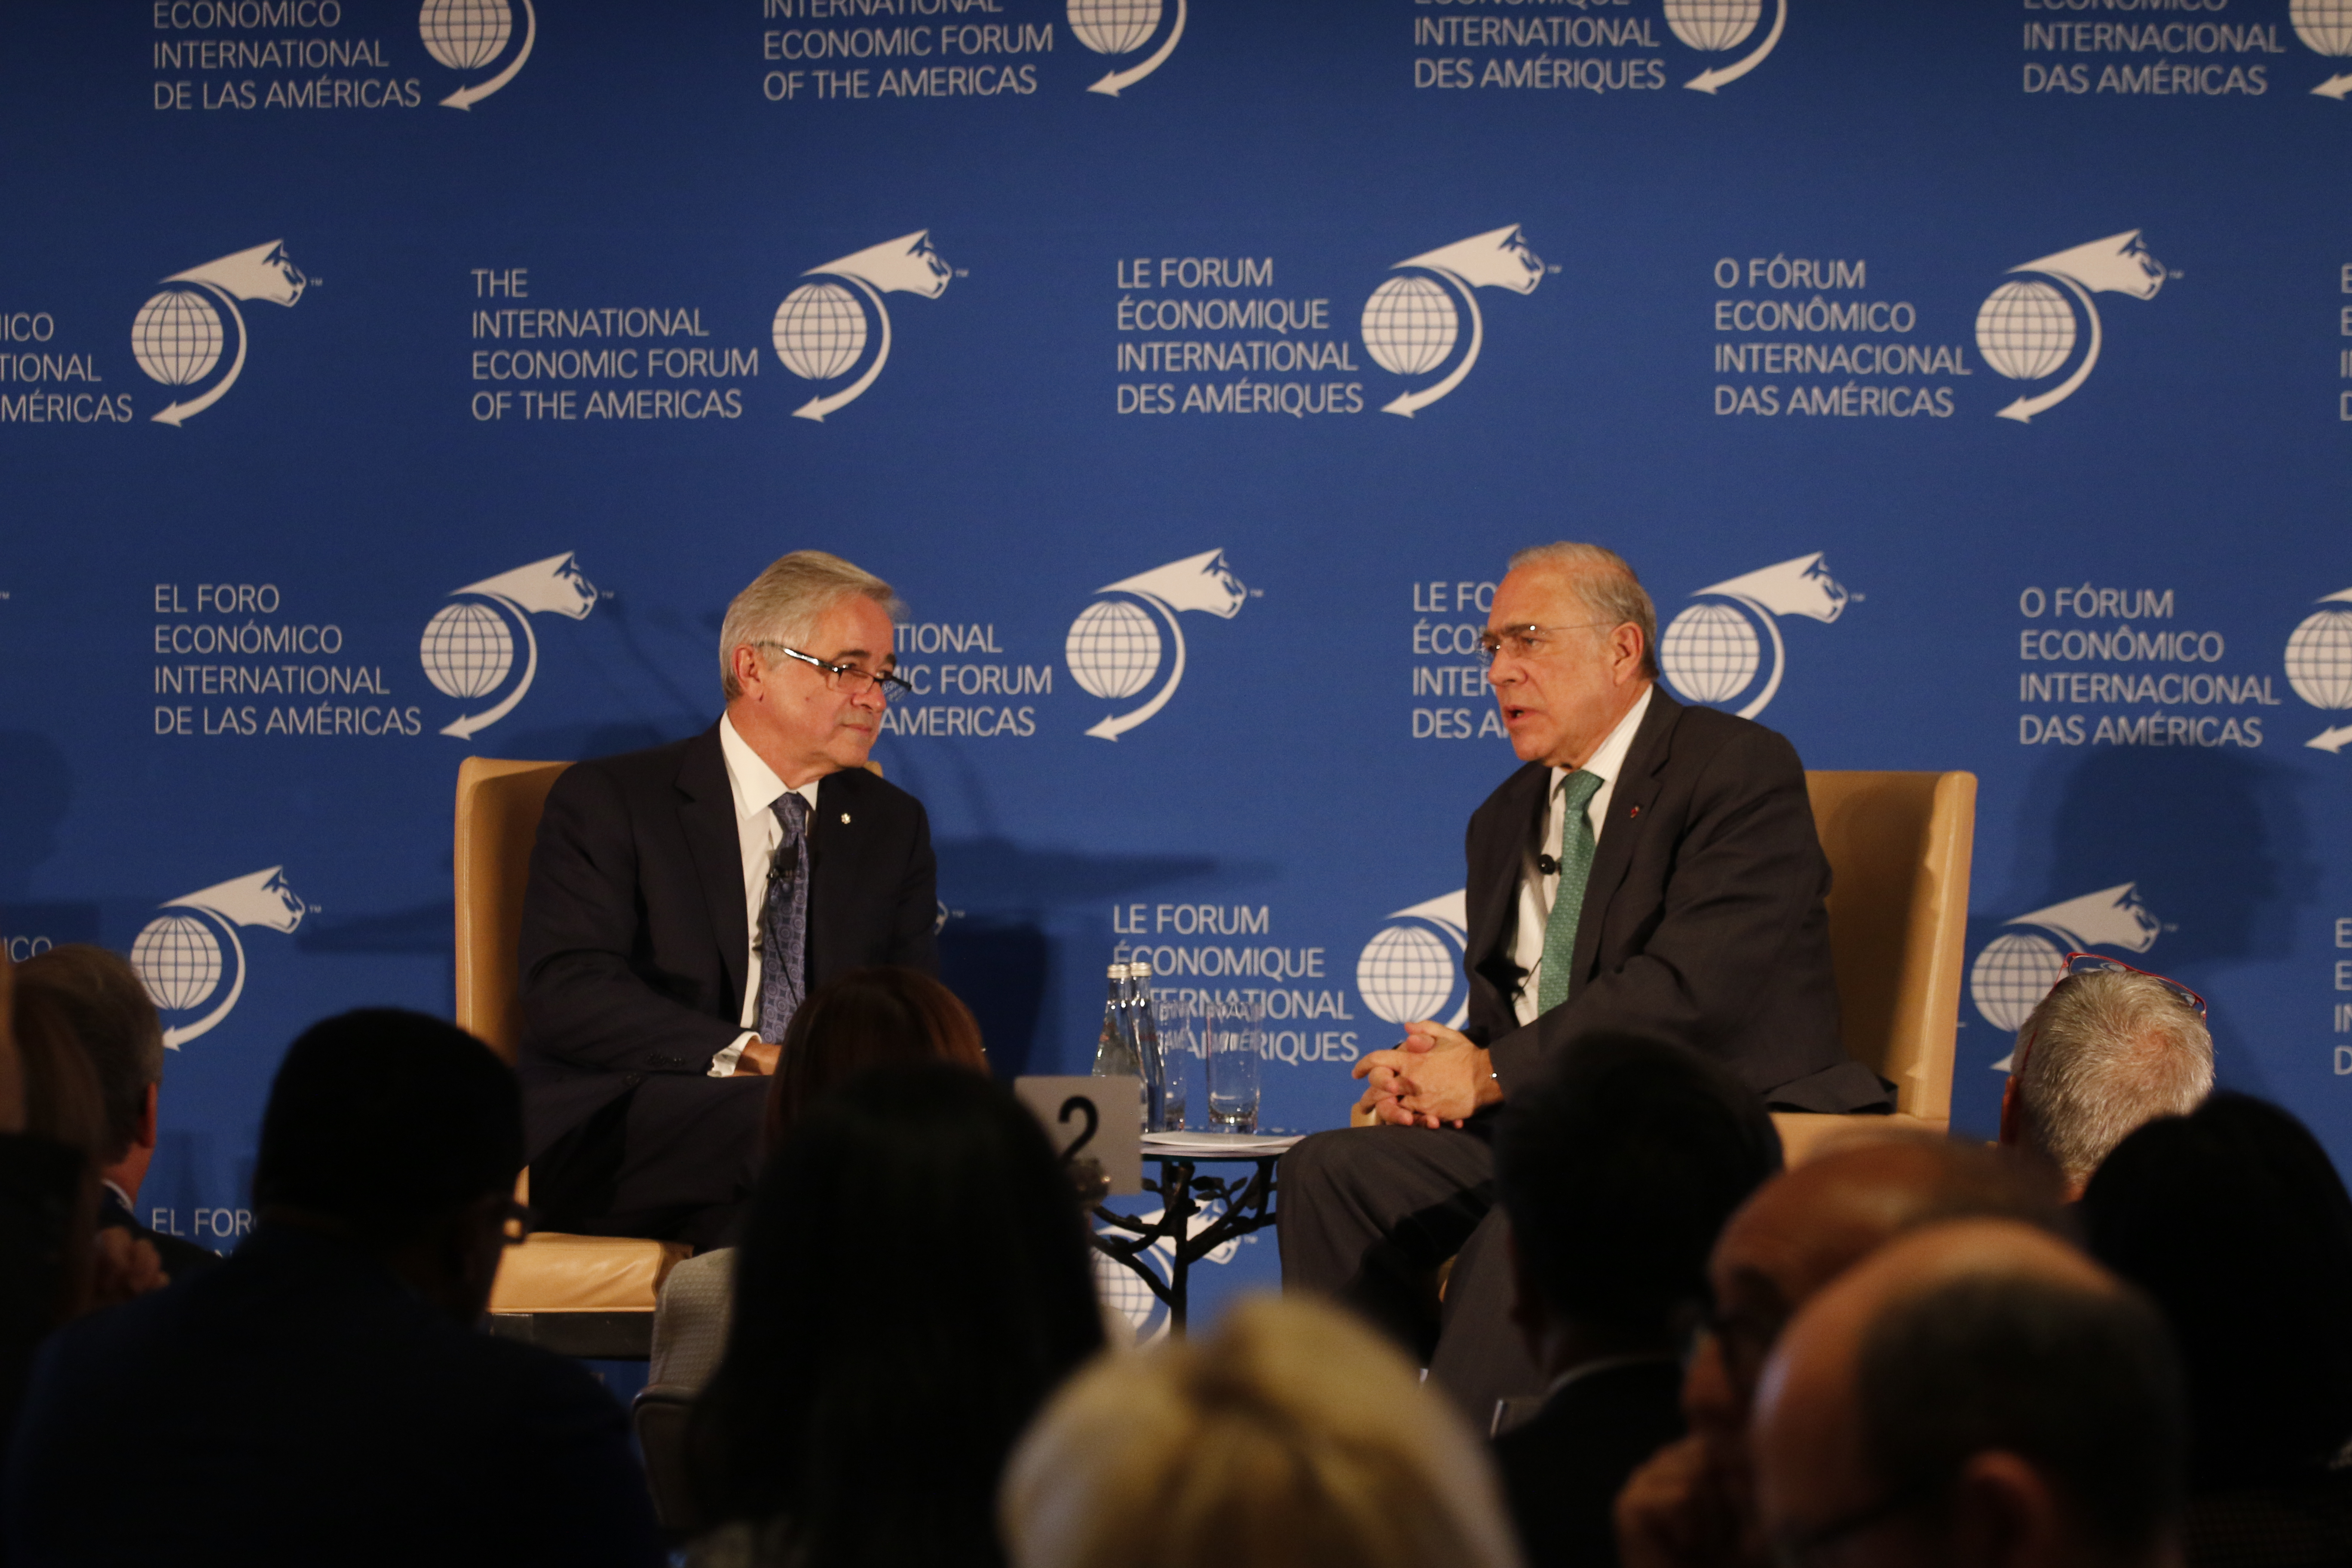 Ángel Gurría, Secretary-General, Organisation for Economic Co-operation and Development (OECD), interviewed by Brian Tobin